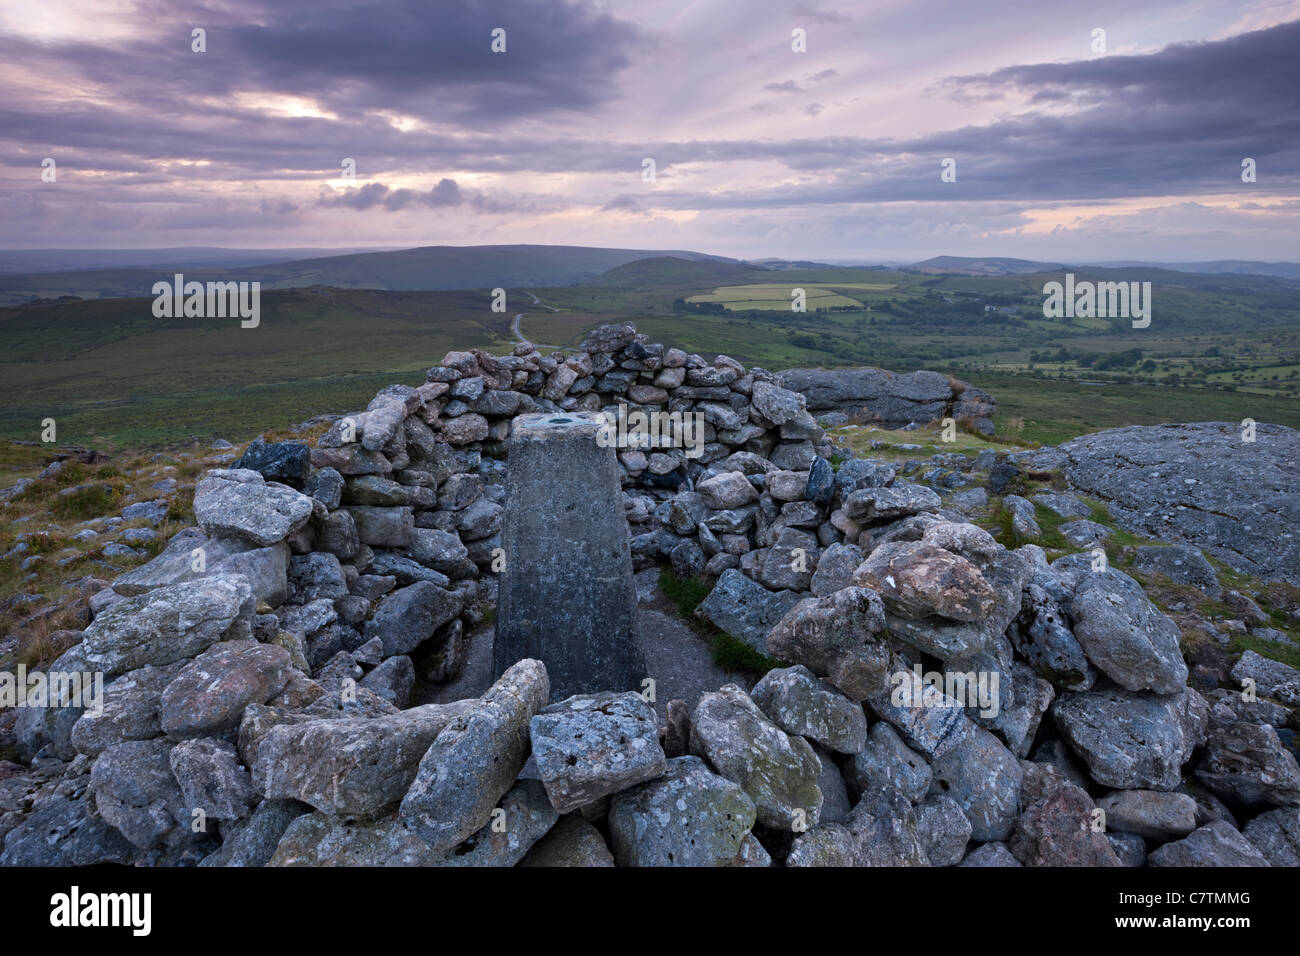 Trig point on the summit of Rippon Tor, Dartmoor National Park, Devon, England. Summer (July) 2011. - Stock Image